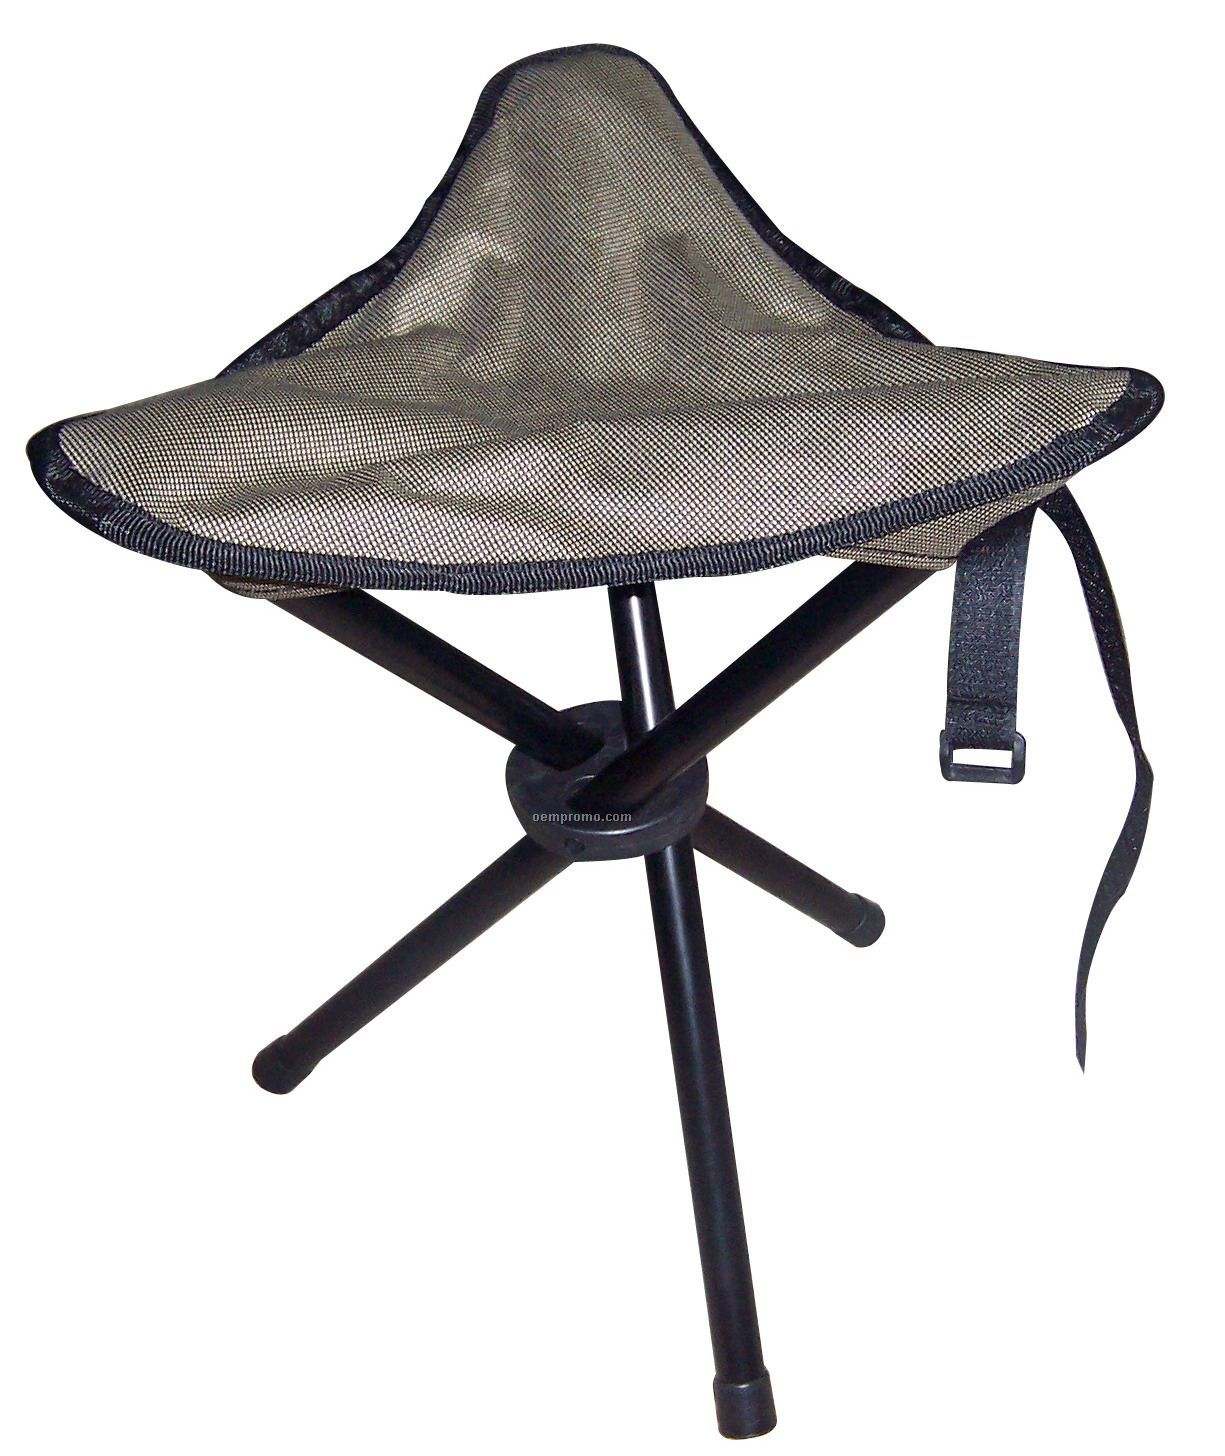 The Spectator Folding Chair China Wholesale The Spectator